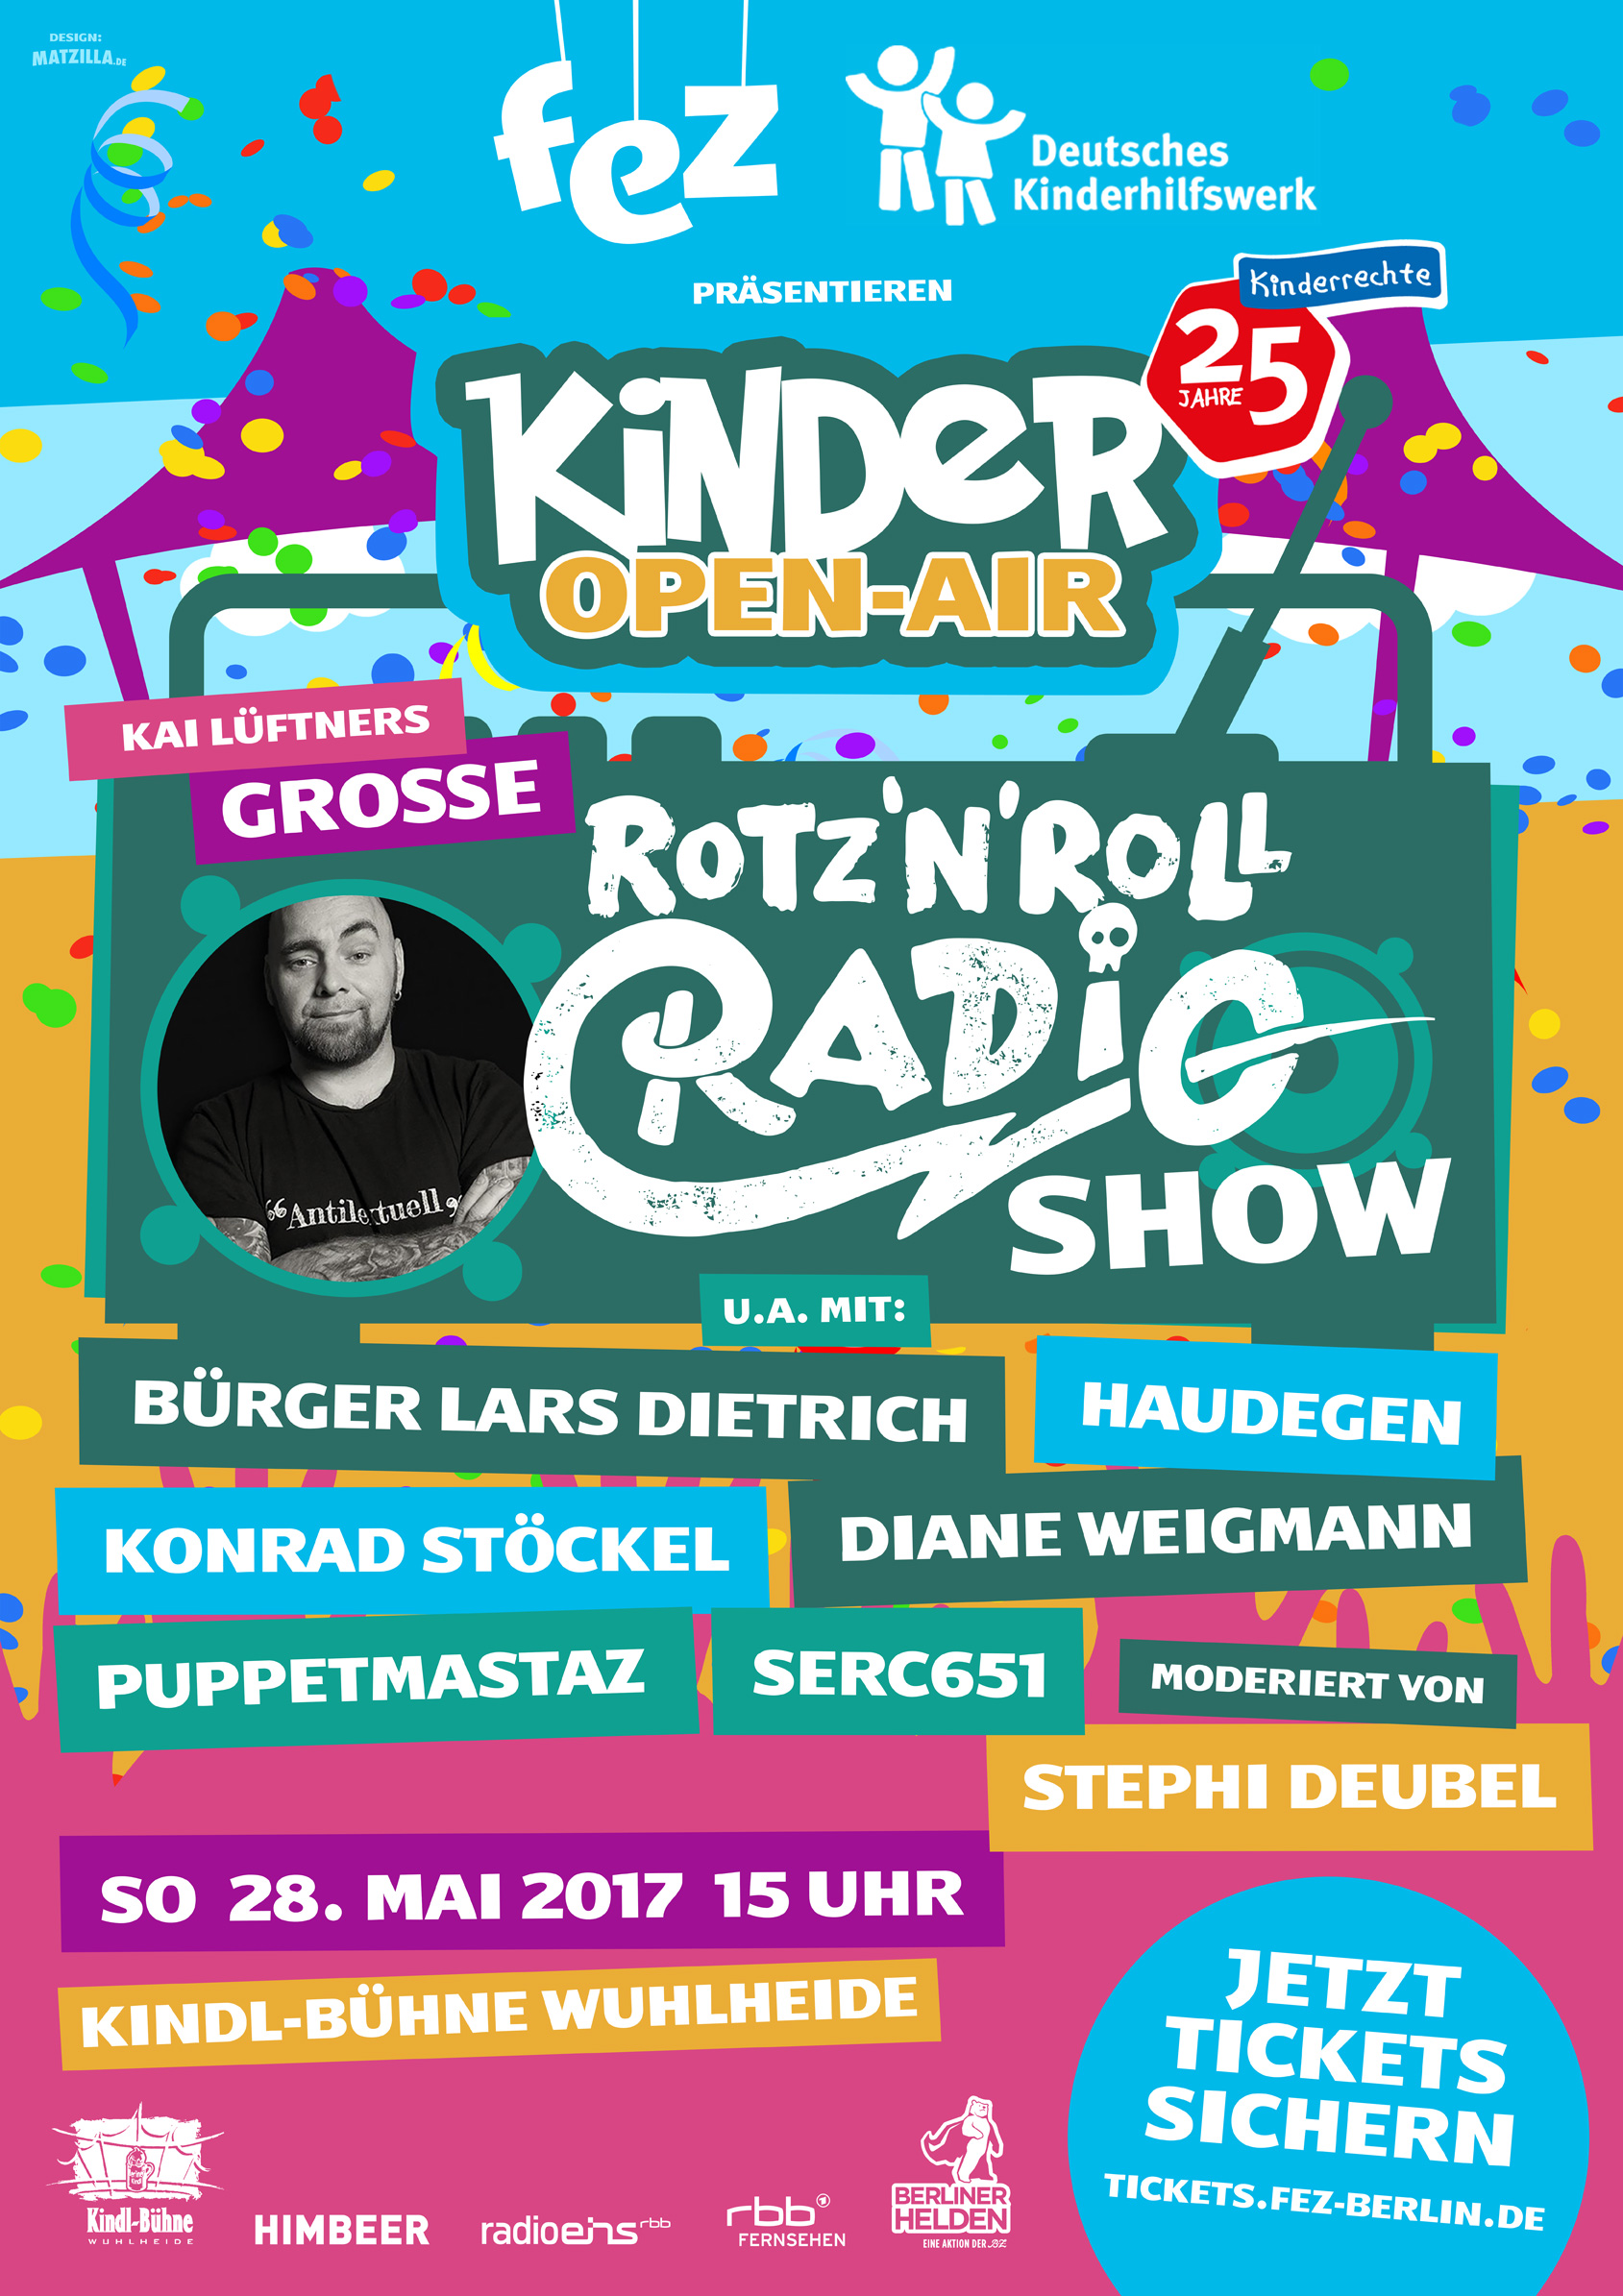 Erstes Kinder Open-Air in der Kindl-Bühne Wuhlheide!